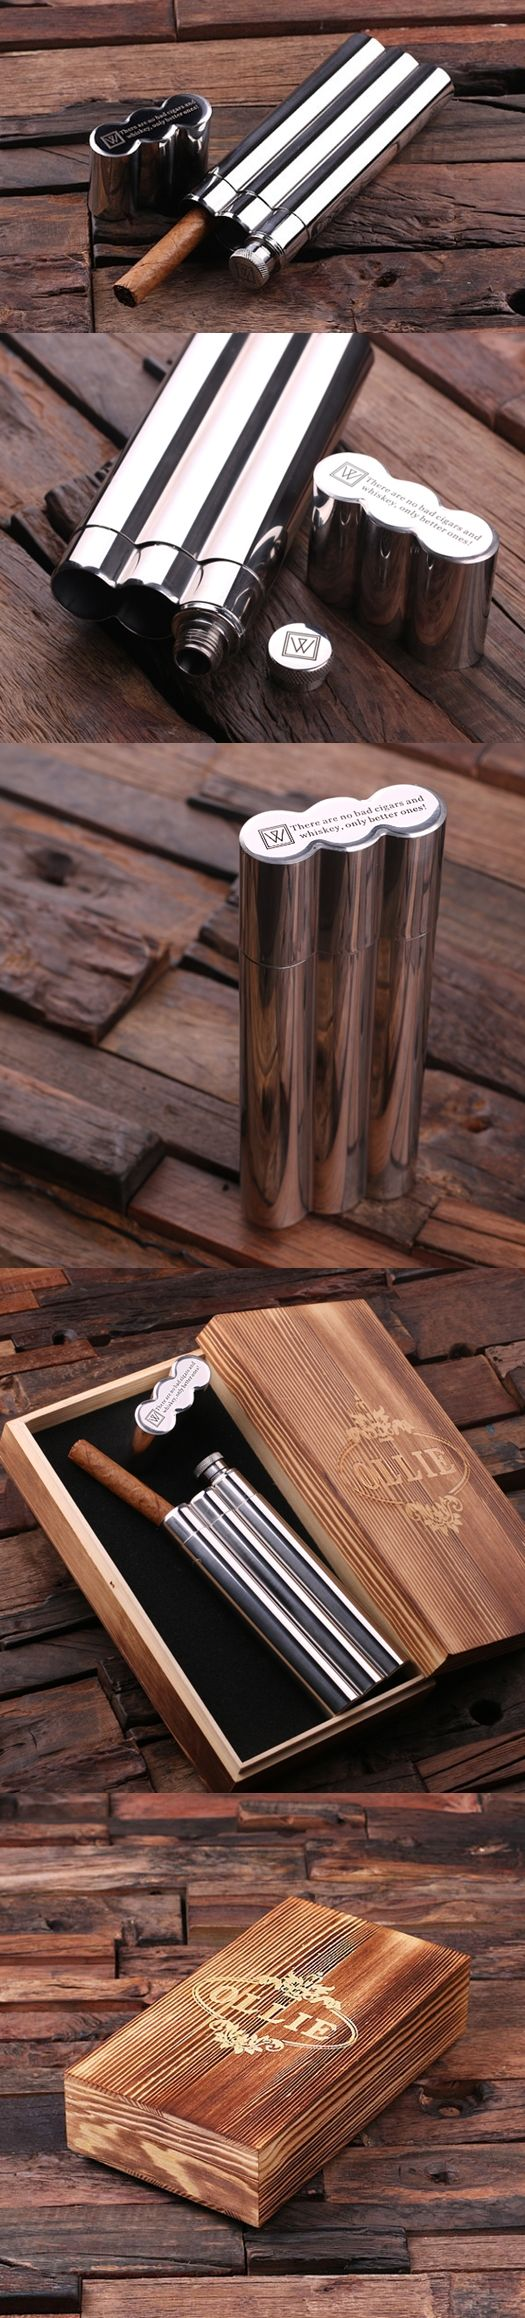 stainless steel cigar holderflask and optional wood box - Cigar Holder